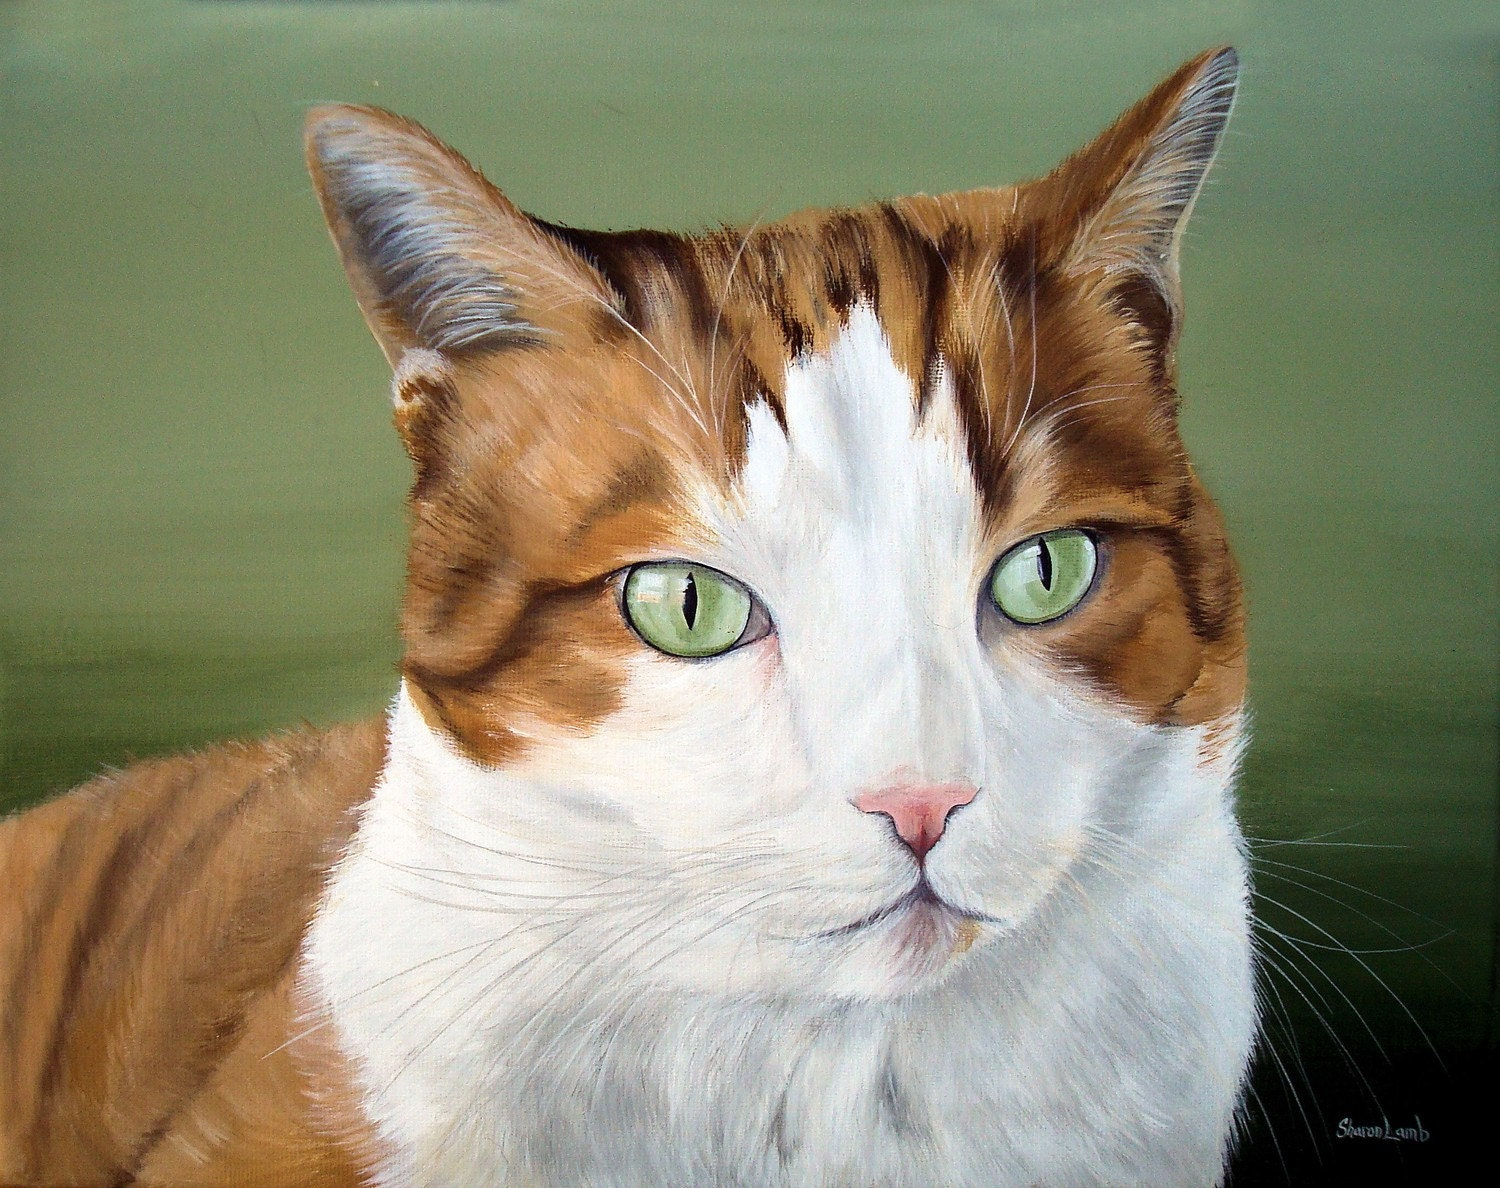 Commissioned Pet Portrait Painting11x14 Hand Painted Your Pet any Animal Dog Cat or Horse